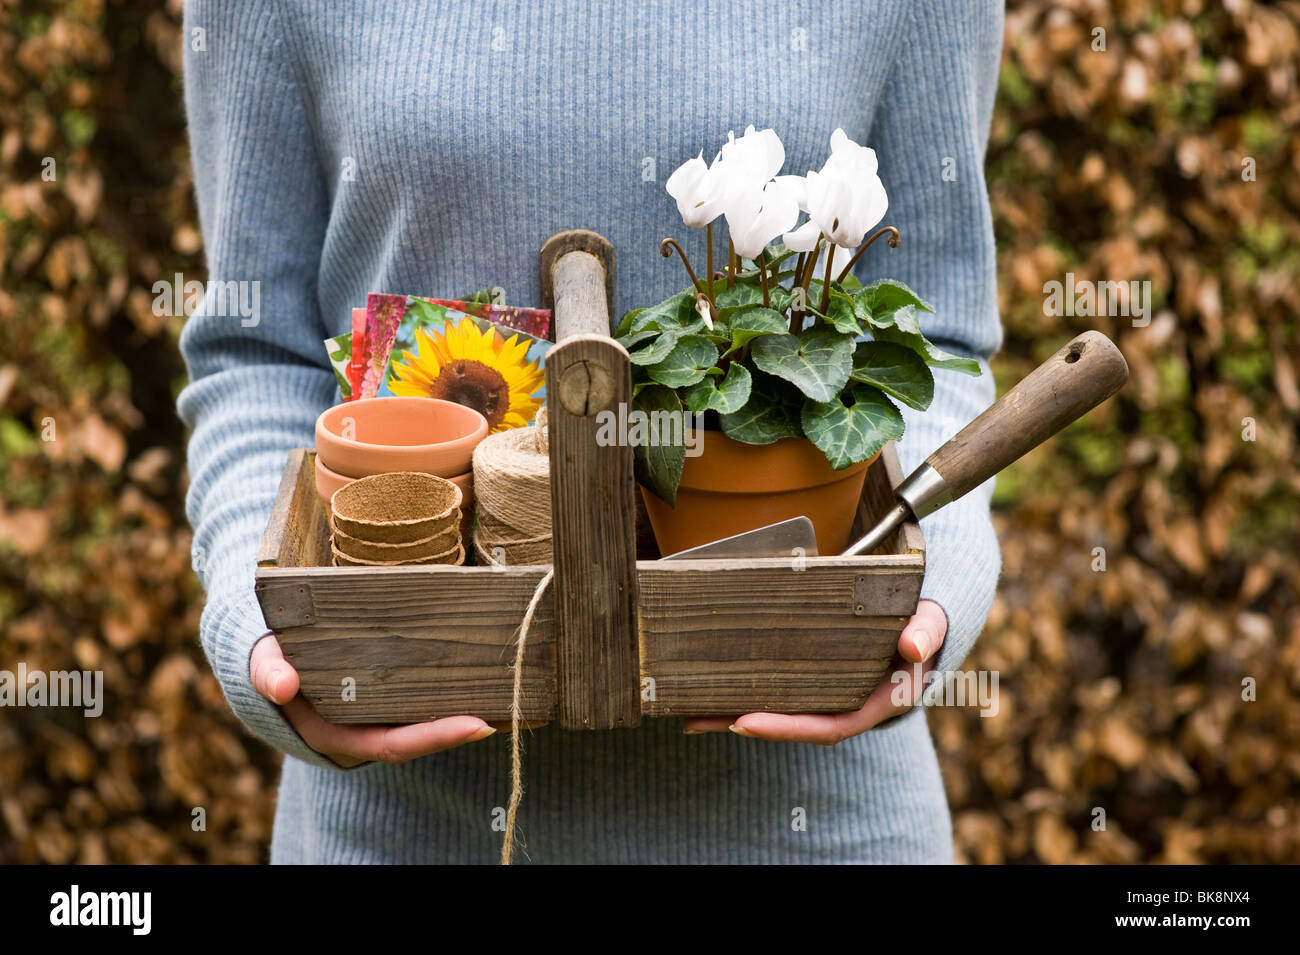 small wooden trug containing stainless steel trowel, string, peat pots, terracotta pots, seed packets and cyclamen - Stock Image